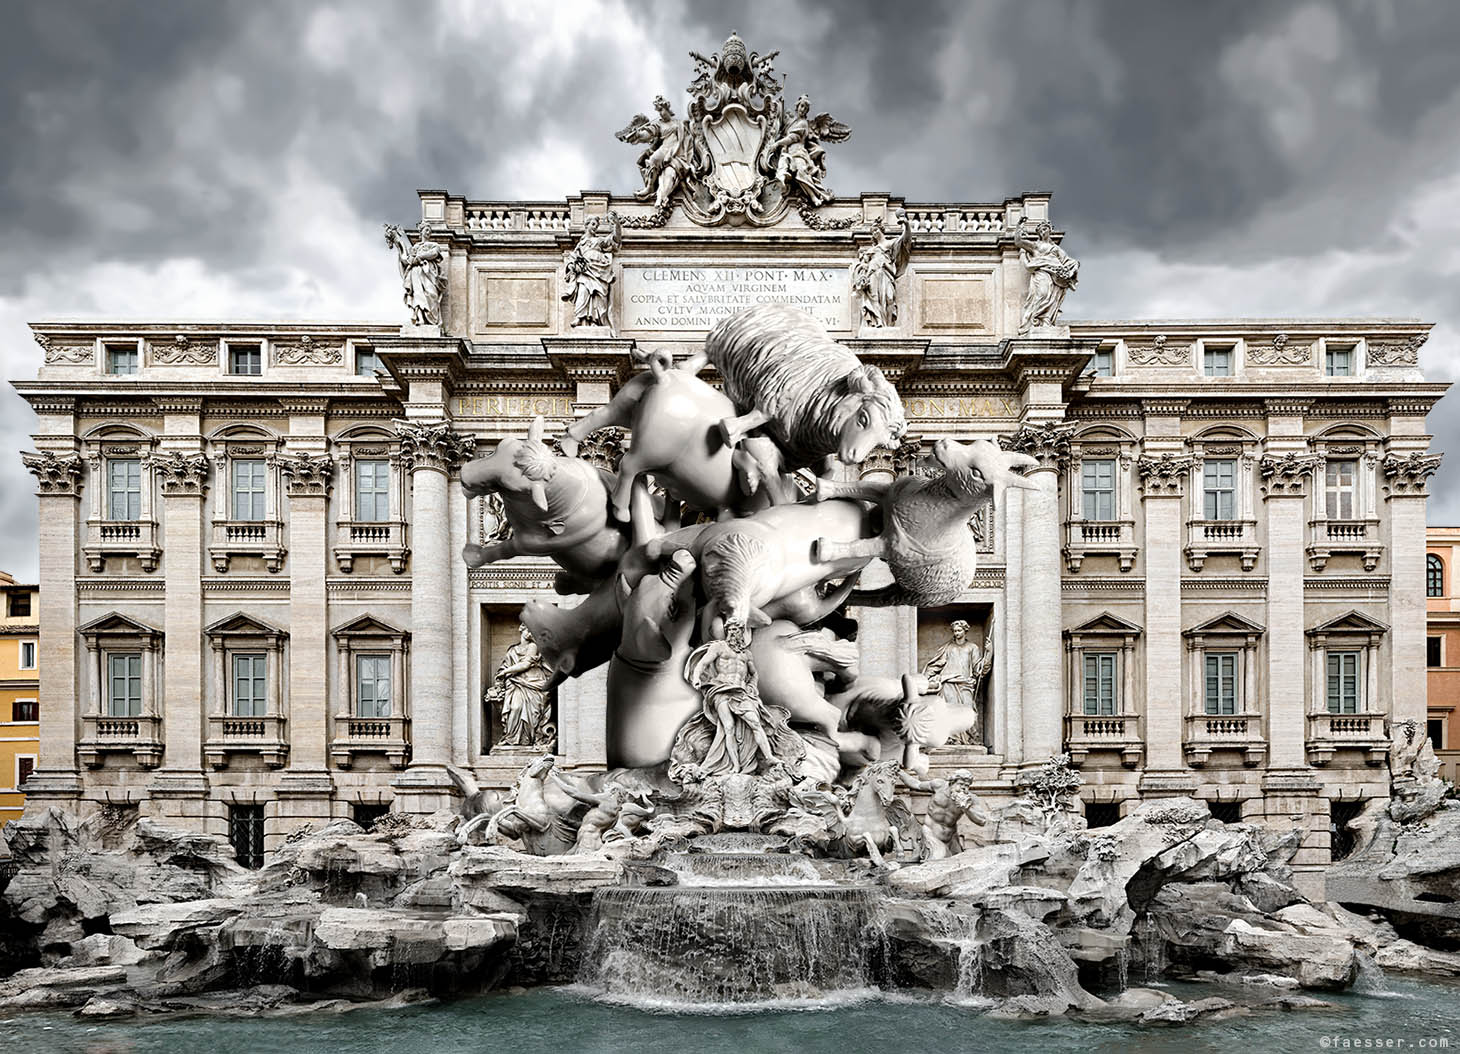 Massive Attack Rome: Landmark extension for Trevi Fountain in Rome; work of art as figurative sculpture; artist Roland Faesser, sculptor and painter 2016